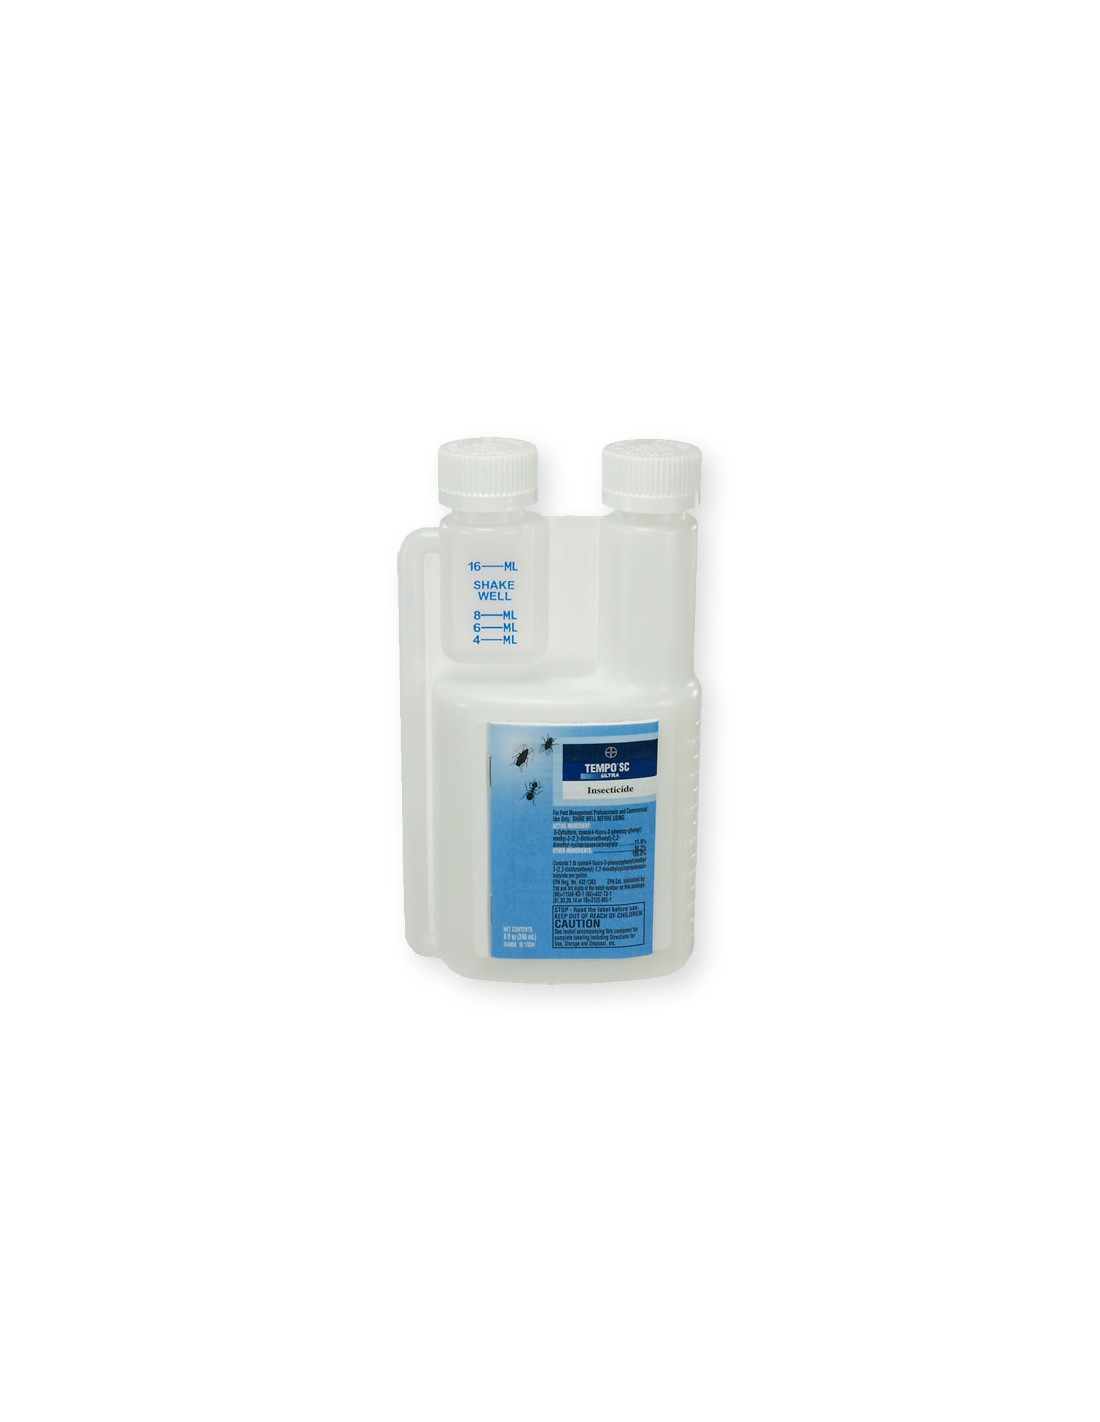 How effective is this product on bed bugs??